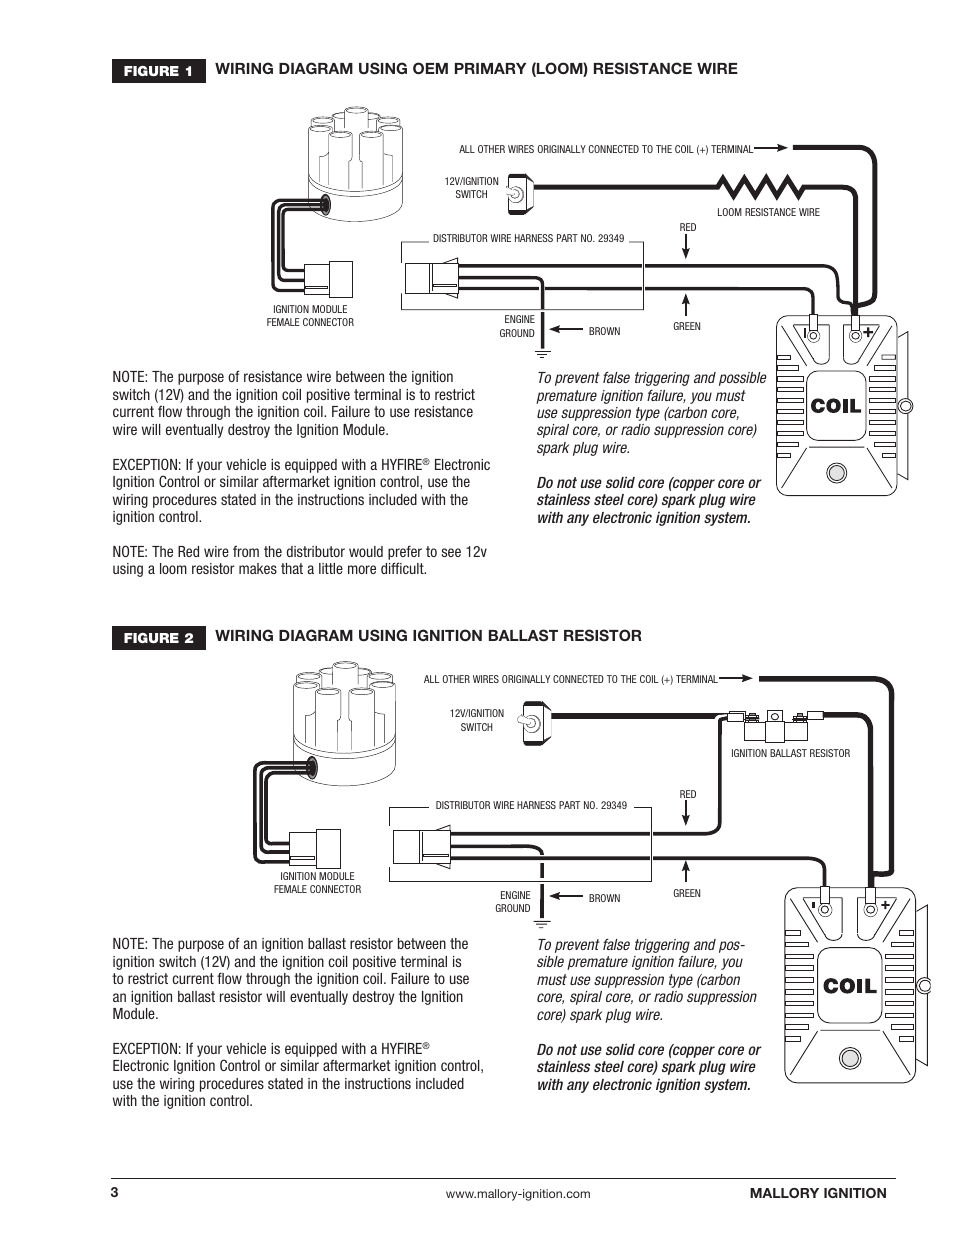 mallory hyfire ignition wiring diagram mallory coil 29440 wiring diagram mallory ignition mallory magnetic breakerless distributor ... #10